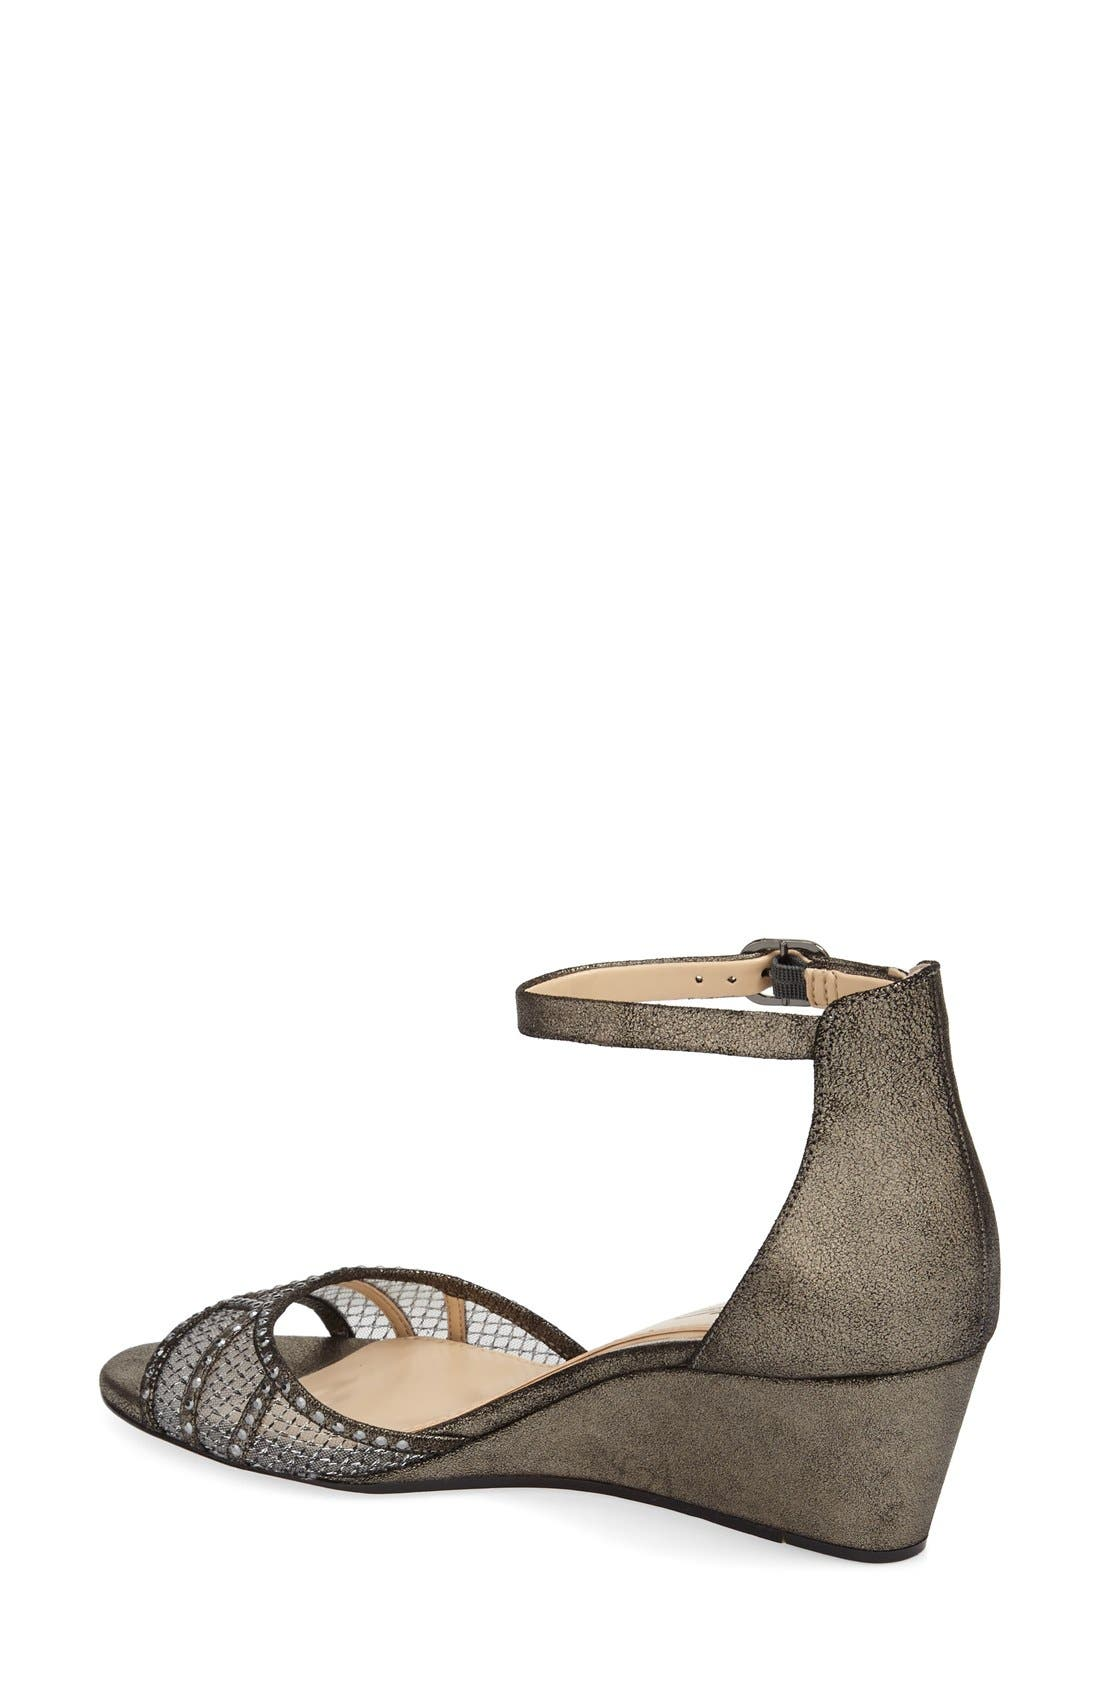 'Joan' Studded Wedge Sandal,                             Alternate thumbnail 2, color,                             Anthracite Suede